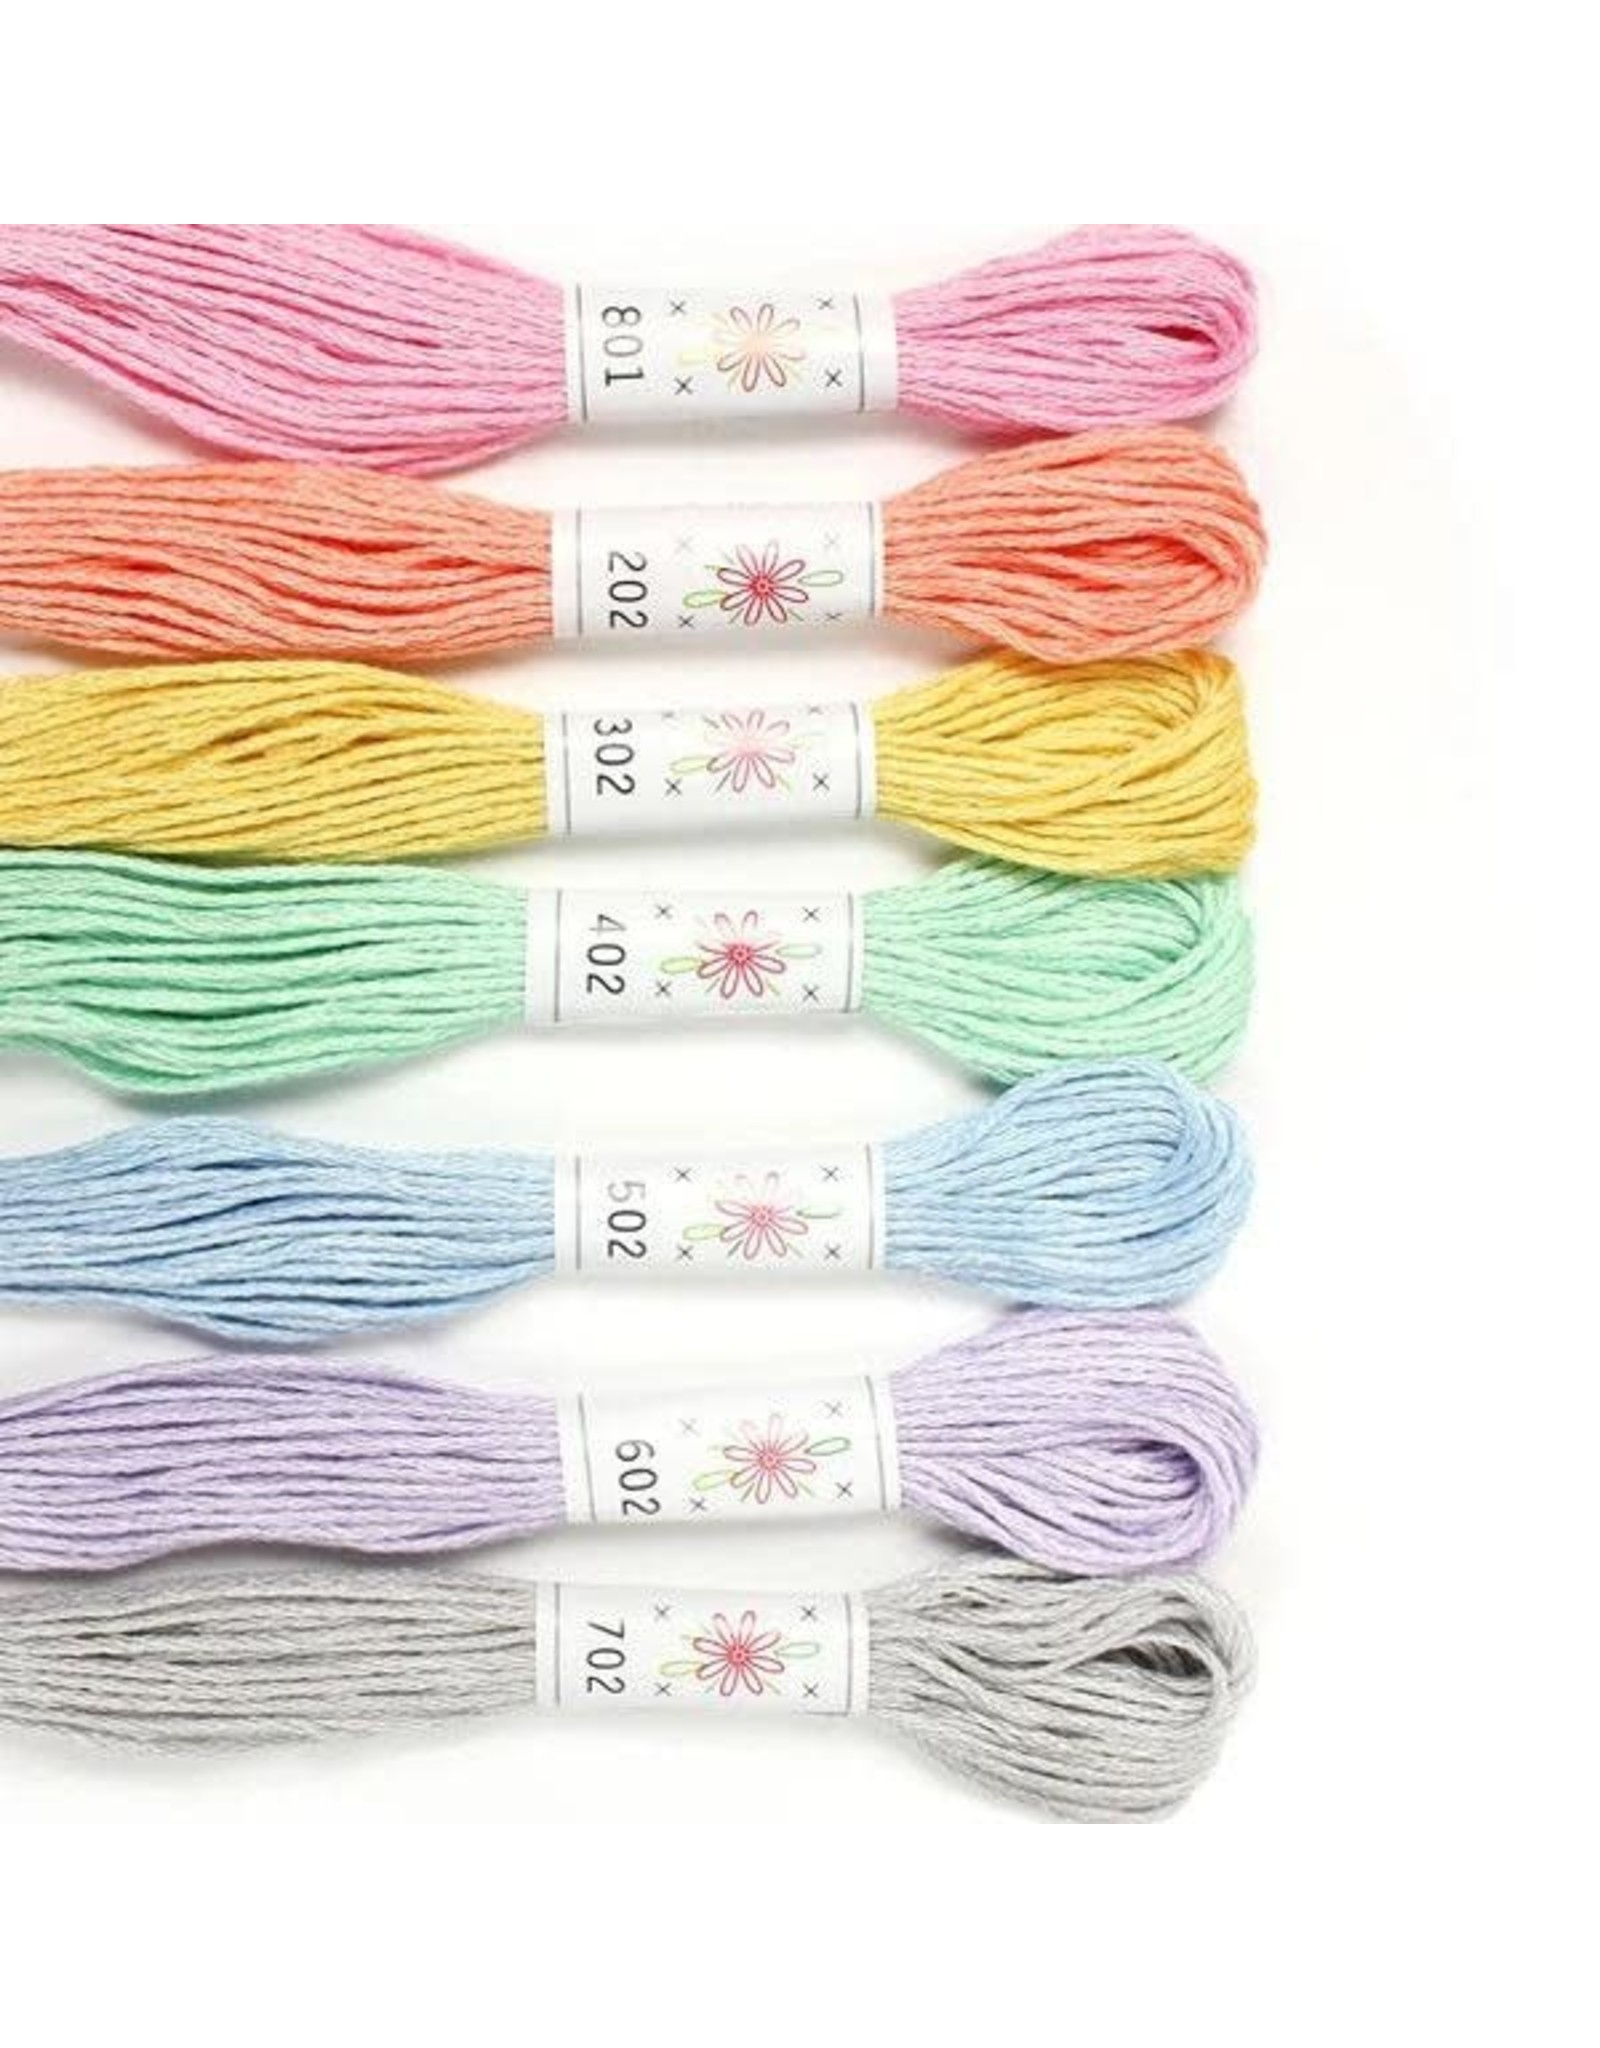 Sublime Stitching Embroidery Floss Set, Frosting Palette - Seven 8.75 yard skeins